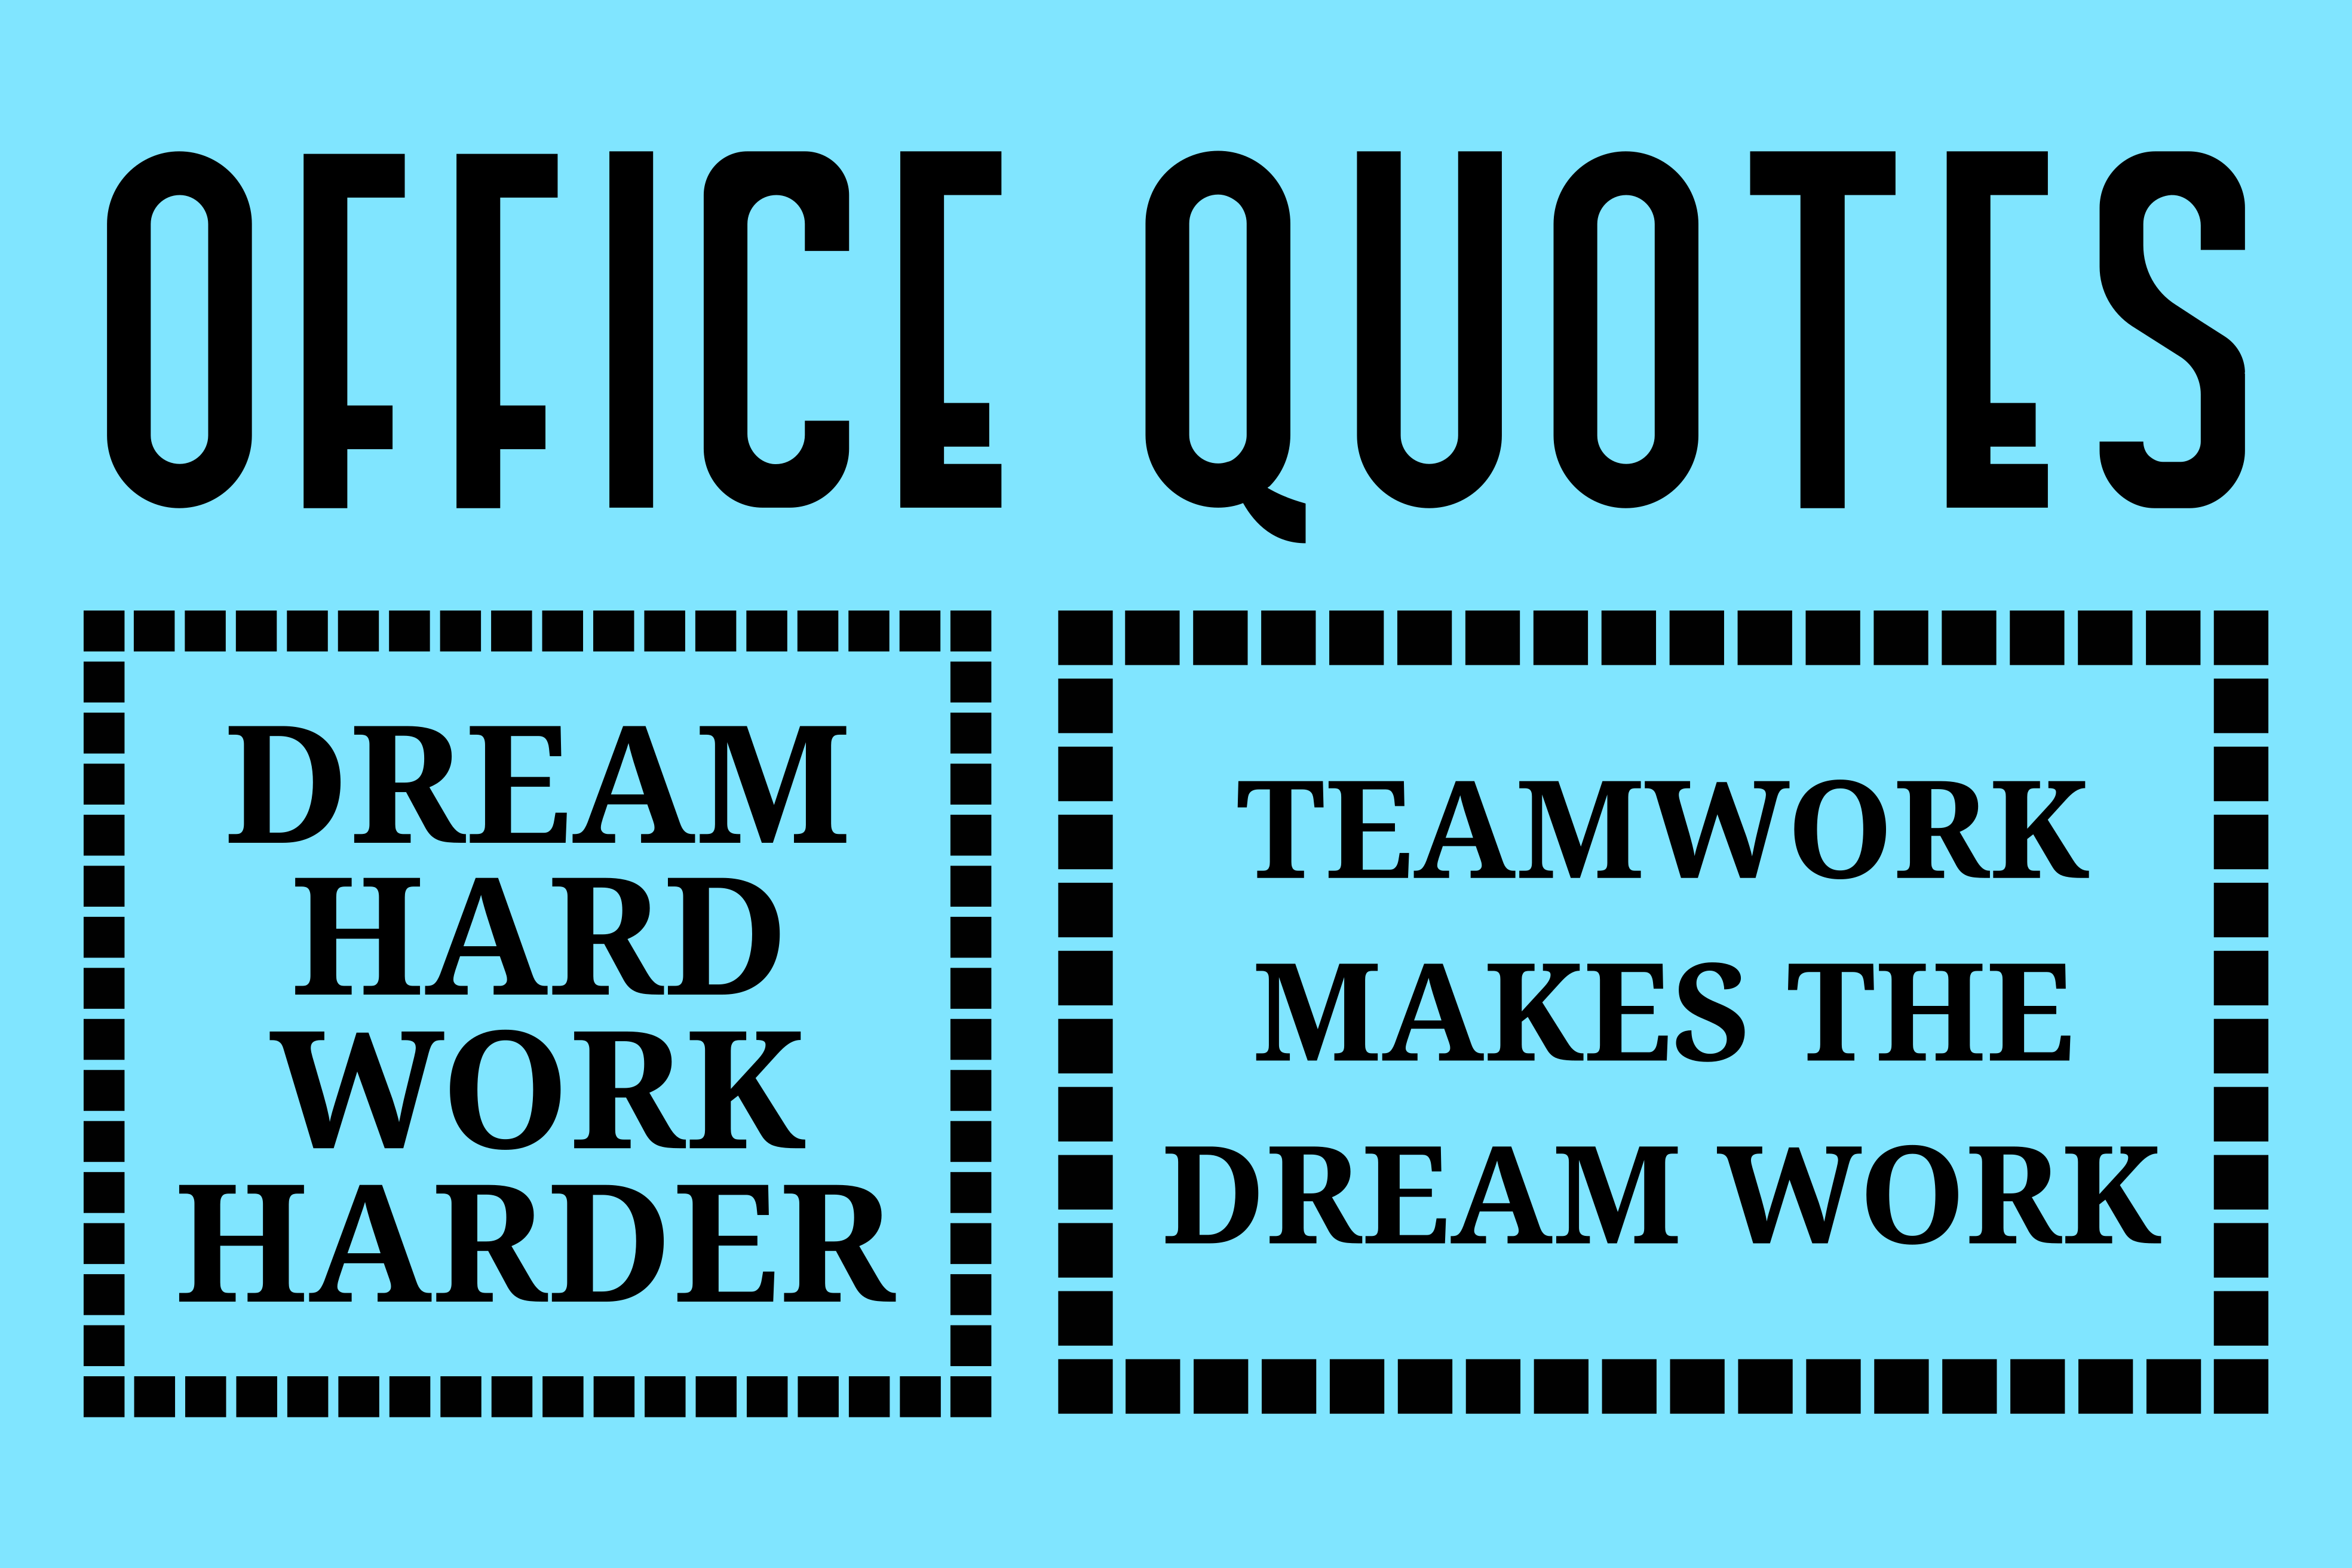 Download Free Office Quotes Graphic By Colorsplash Creative Fabrica for Cricut Explore, Silhouette and other cutting machines.